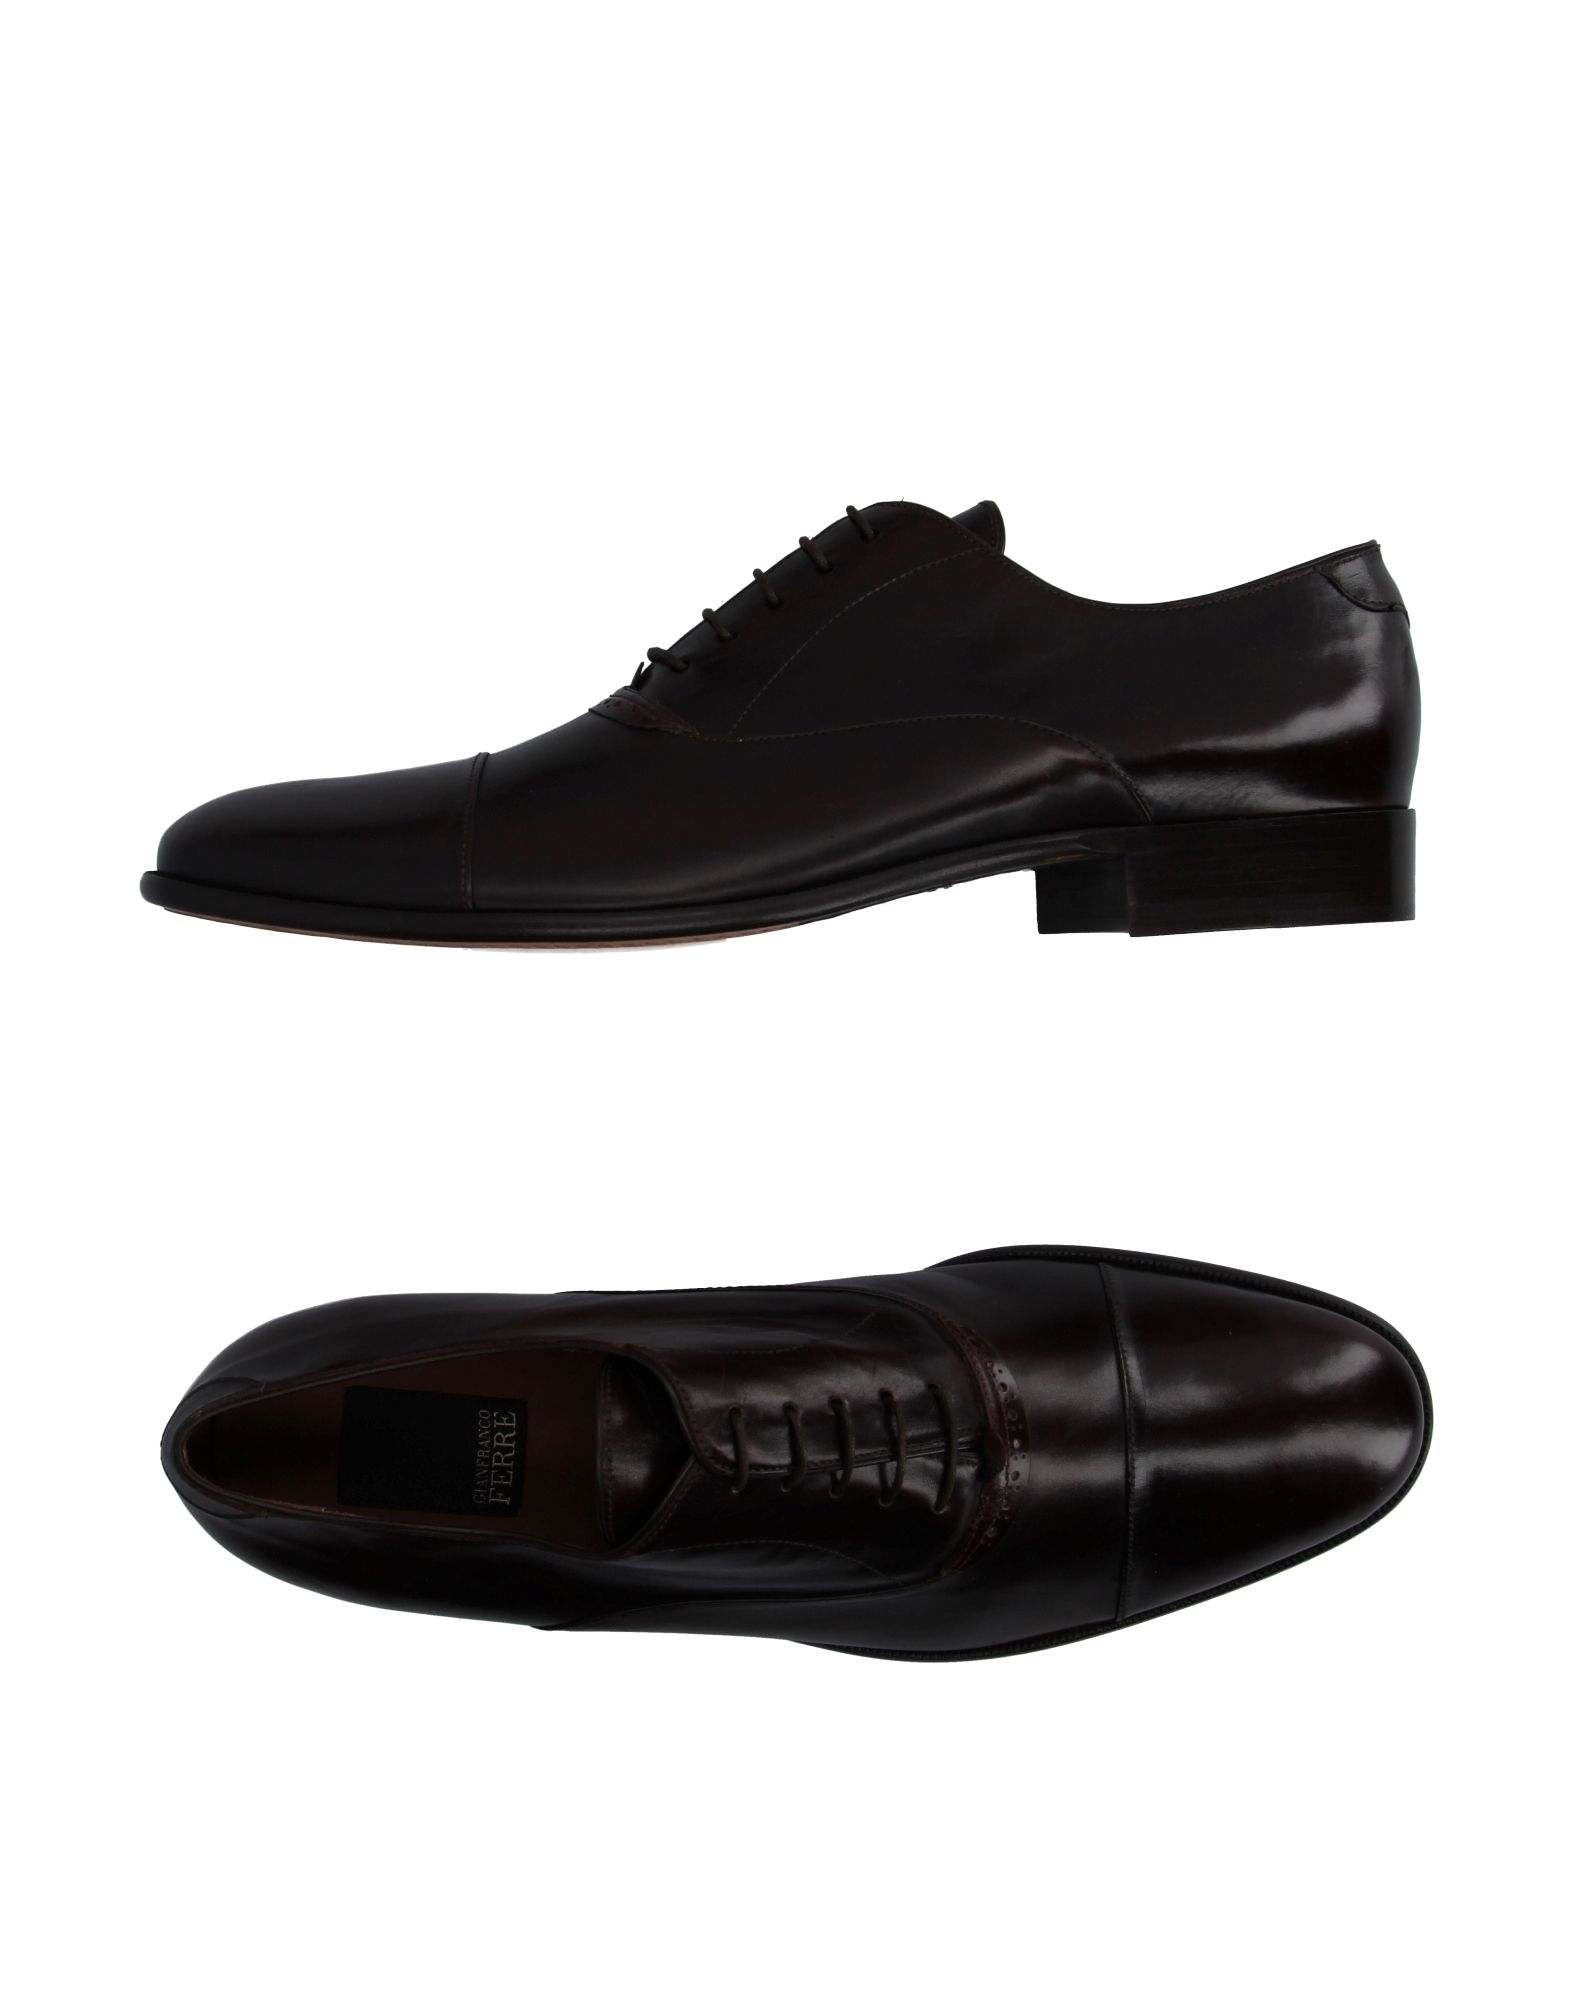 gianfranco ferr 233 lace up shoes in black for